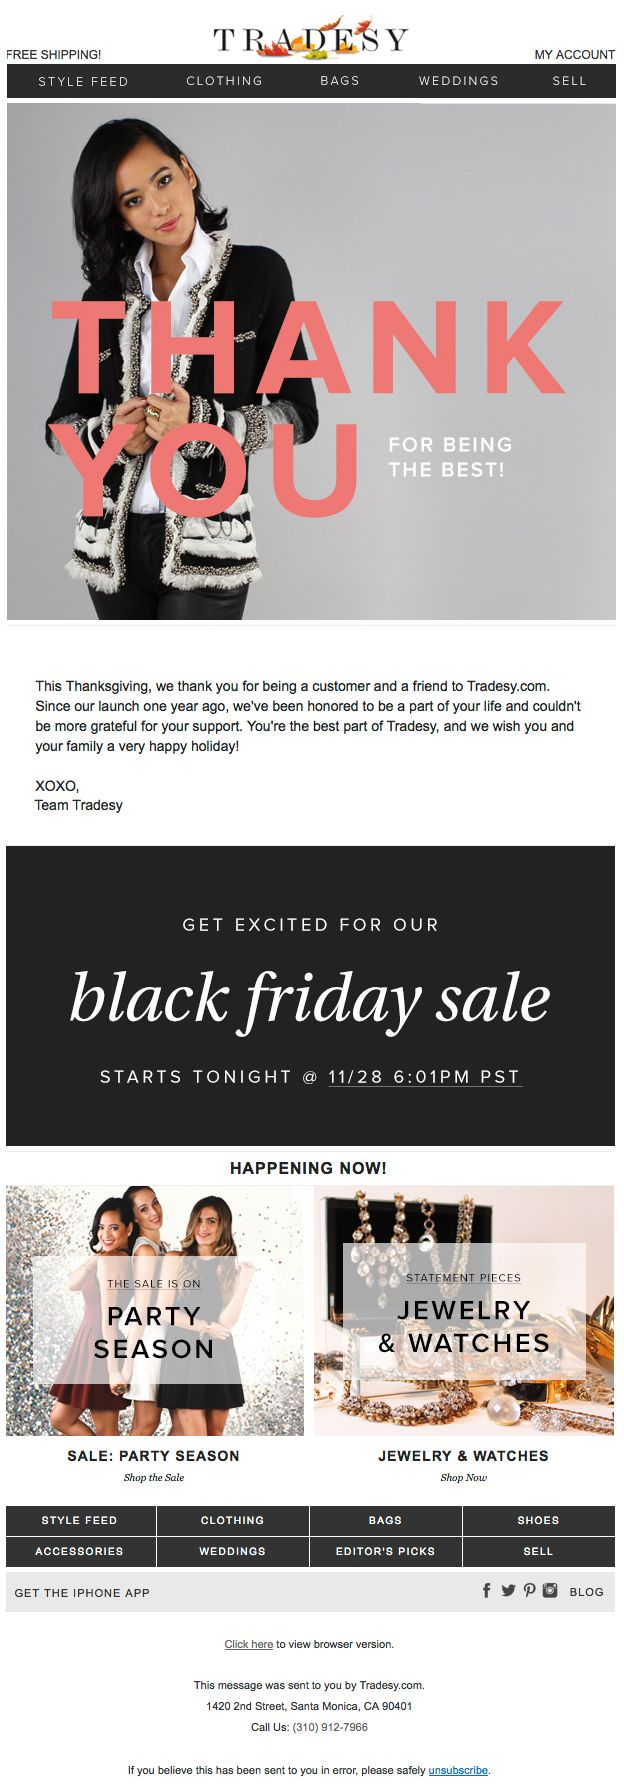 """Tradesy - Thanksgiving / Black Friday email - 11/28/13 - """"Our Message to You on Thanksgiving"""""""